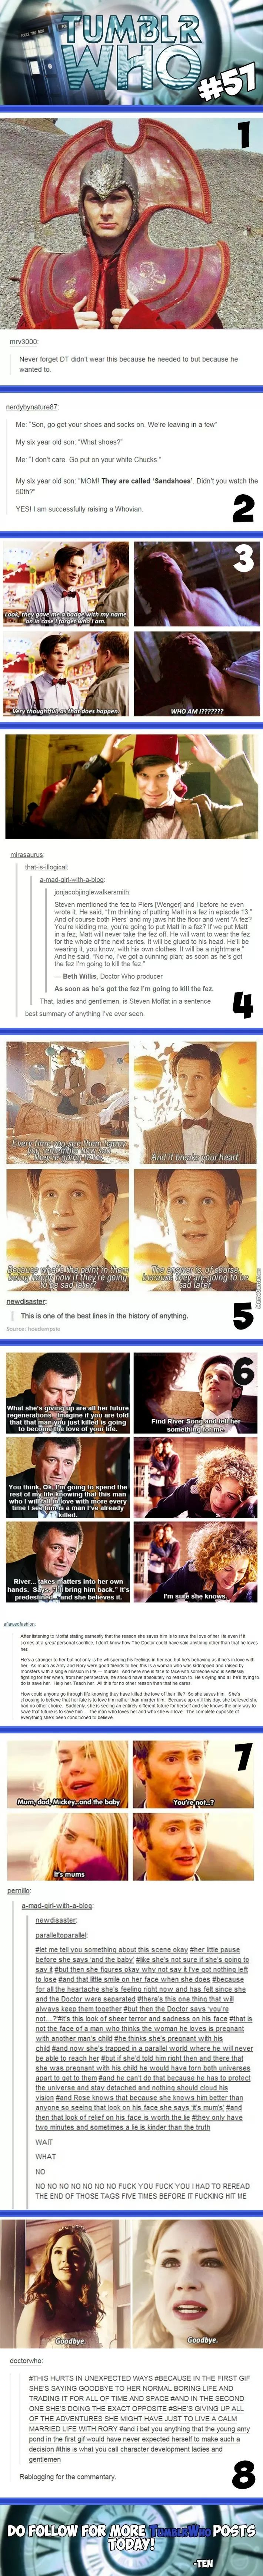 Doctor Who on tumblr. Although I disagree with the one post. Rose was not pregnant with the Doctor's baby. We know this from future episodes.